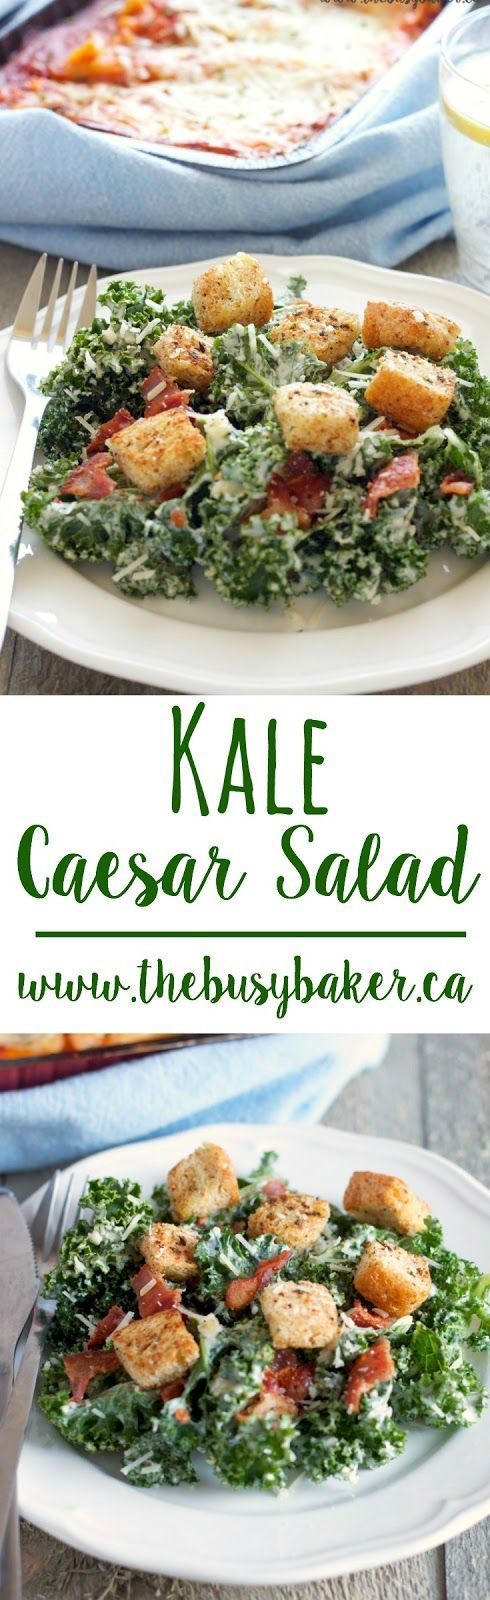 This Kale Caesar Salad with Bacon and Homemade Croutons is the perfect side dish for your next family meal!  #STOUFFERSGOODNESS #CollectiveBias